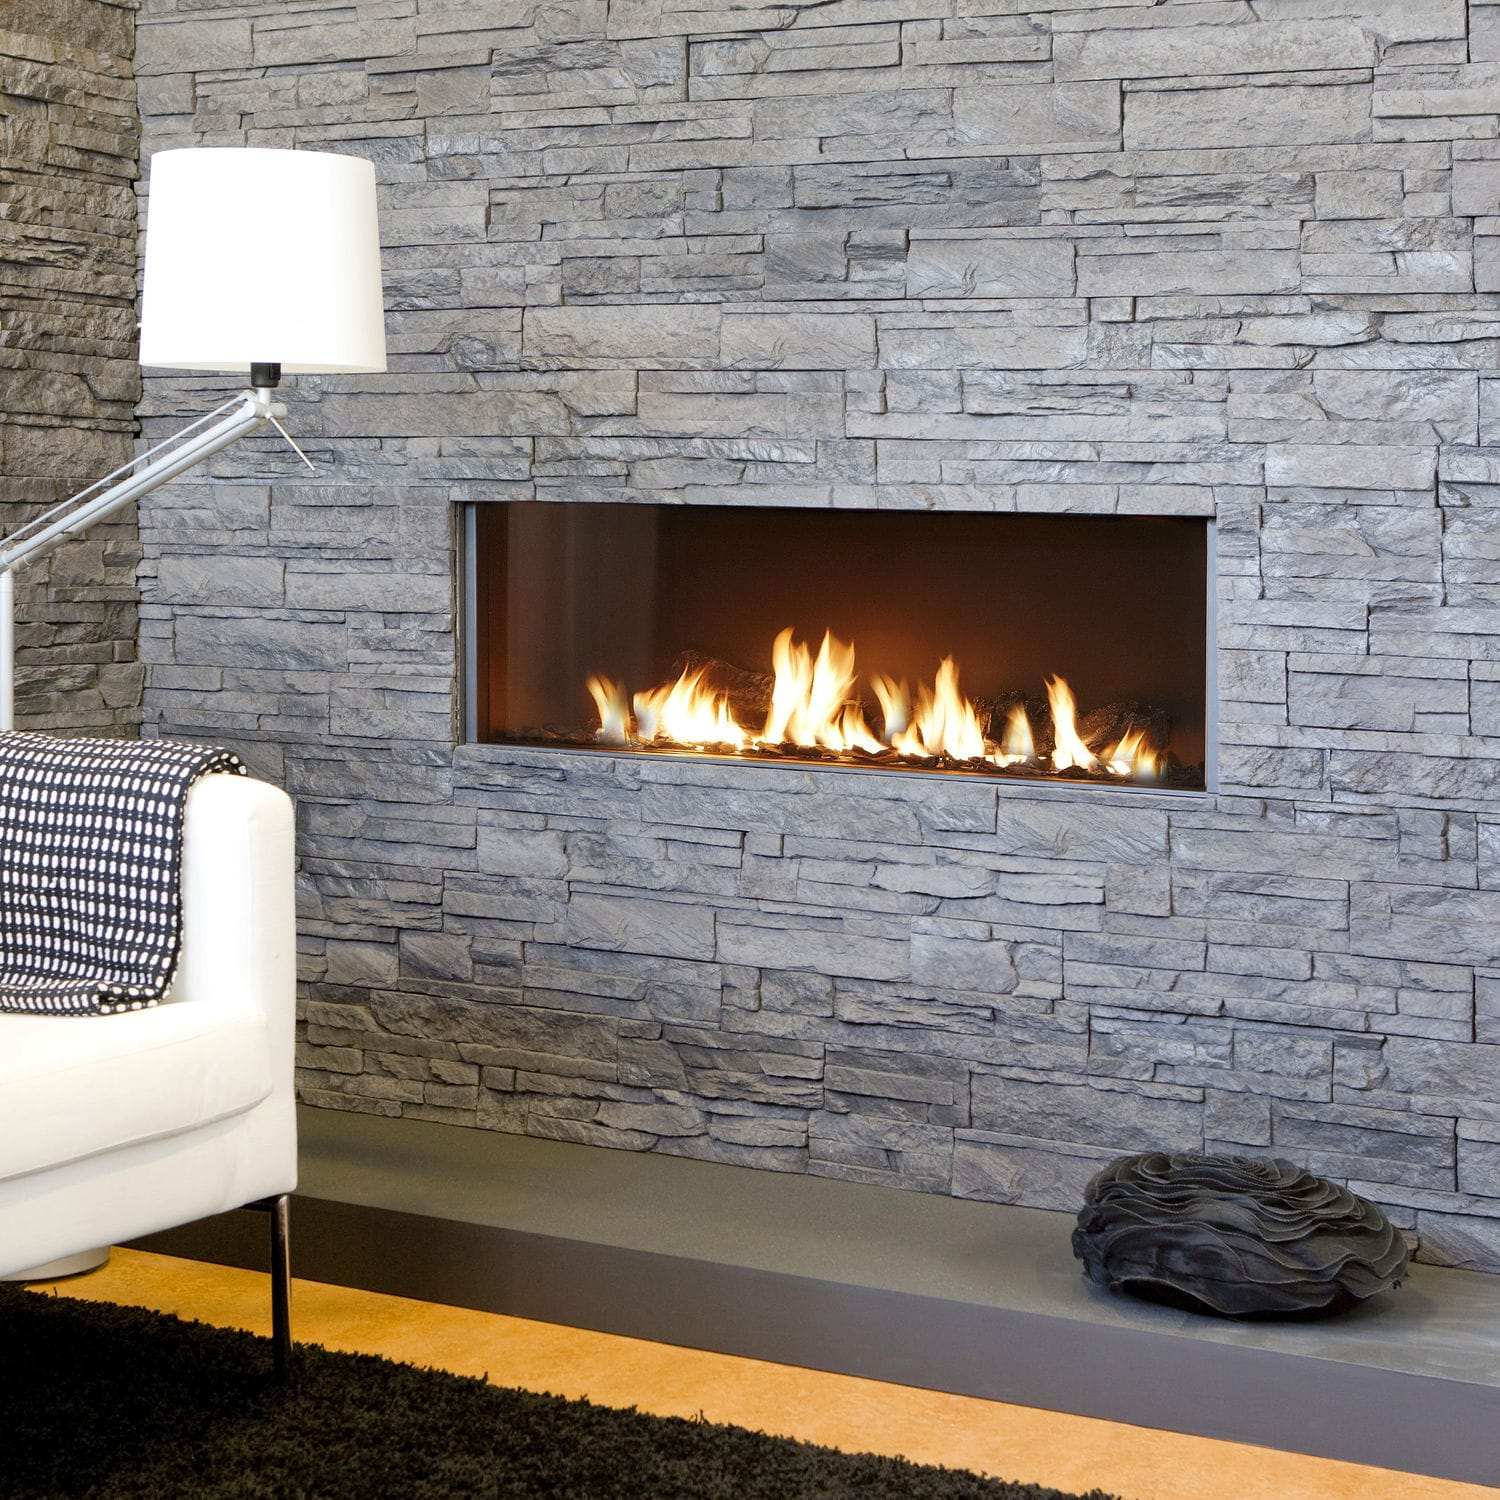 Discover all the information about the product Gas fireplace / contemporary / closed hearth / built-in MODORE 140 MKII - Element4 B.V. and find where you can buy it. Contact the manufacturer directly to receive a quote.